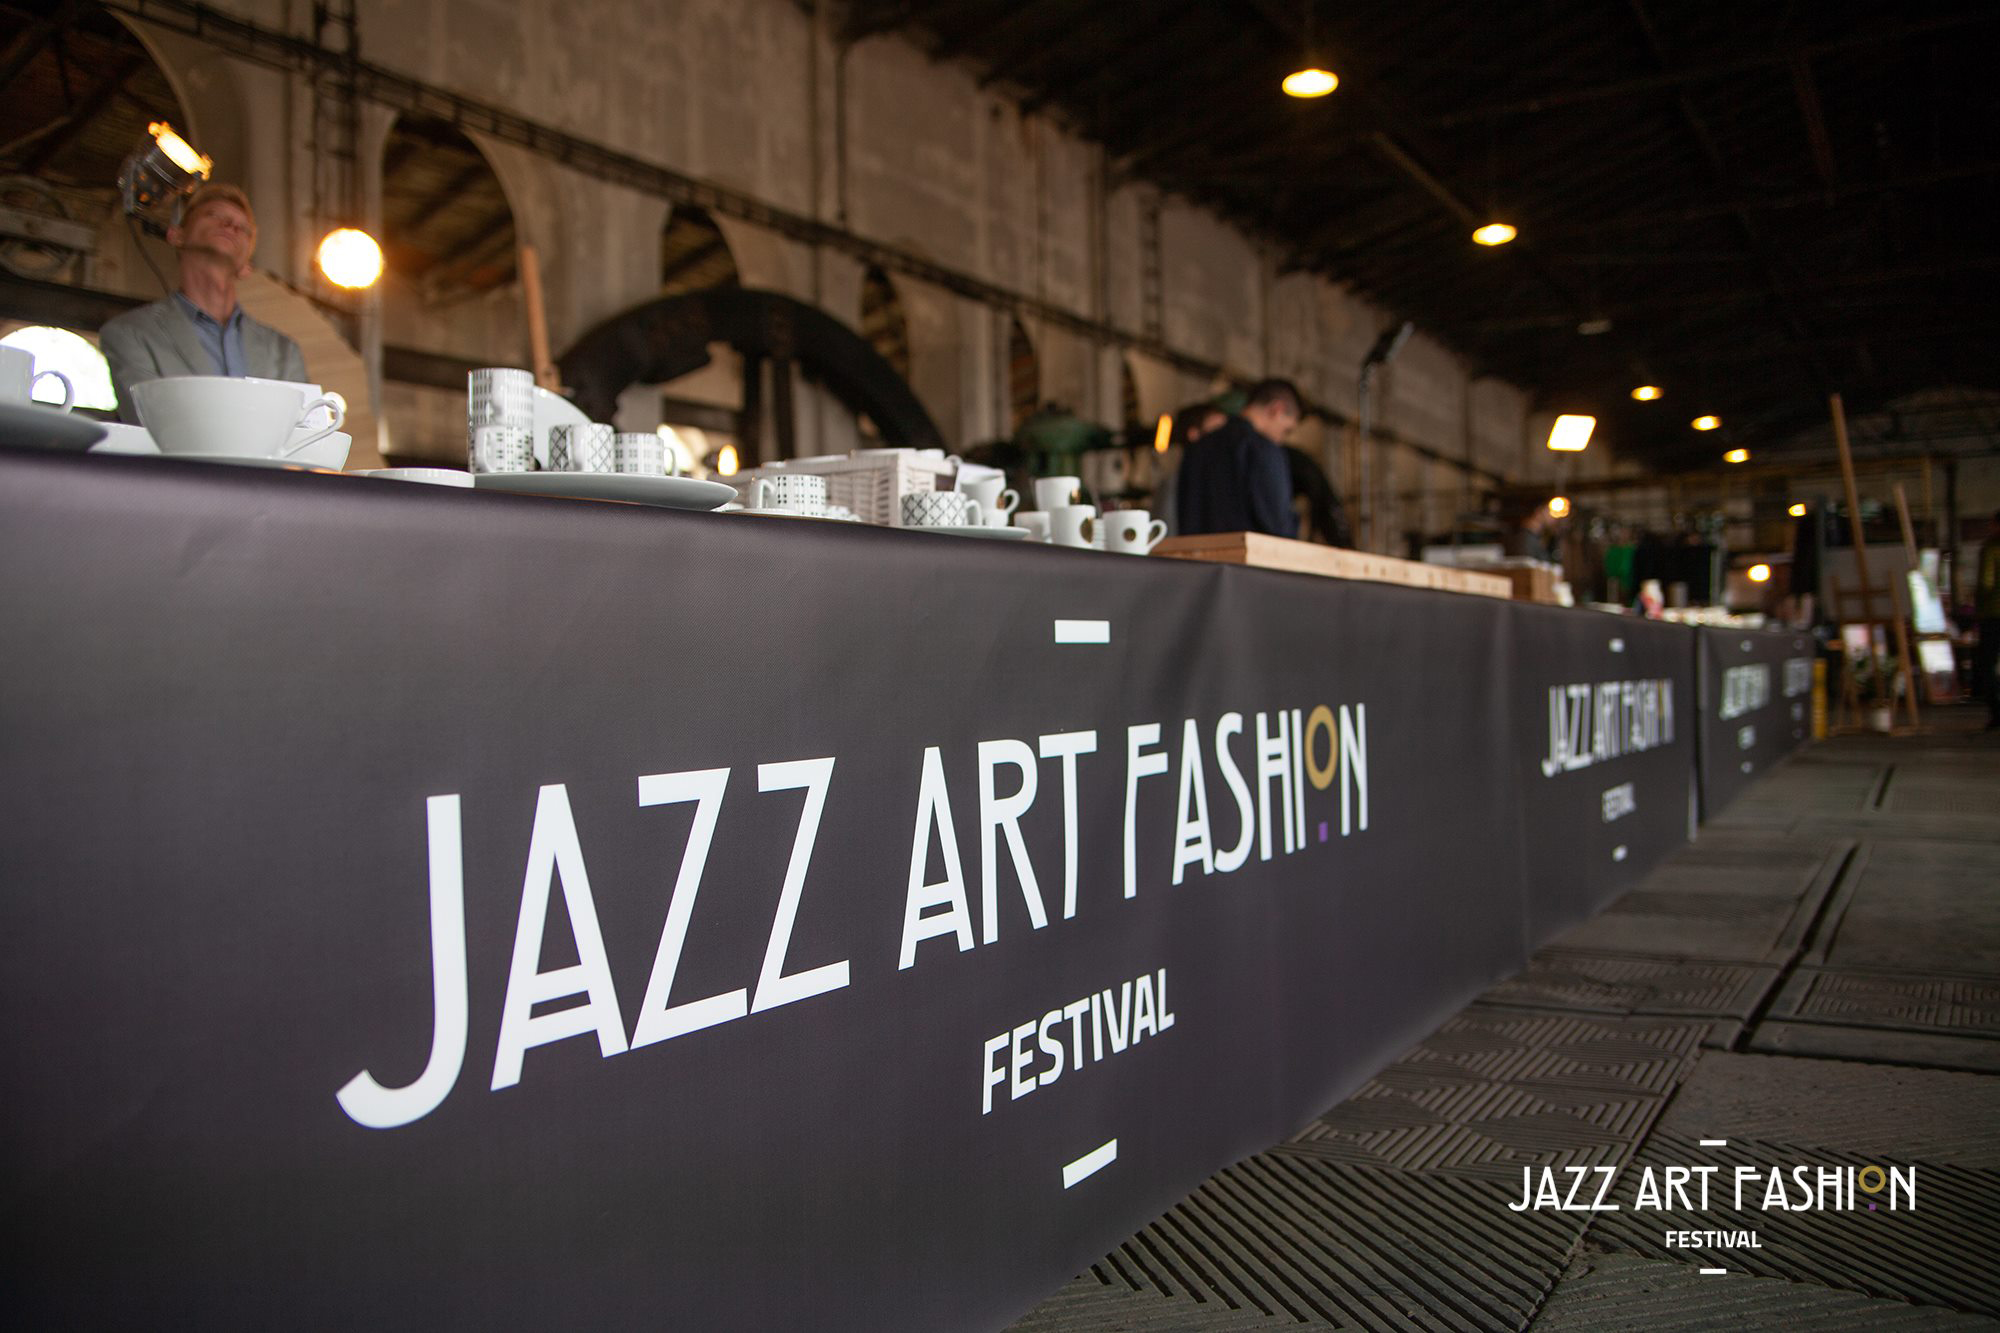 Stół z napisem Jazz Art Fashion Festival